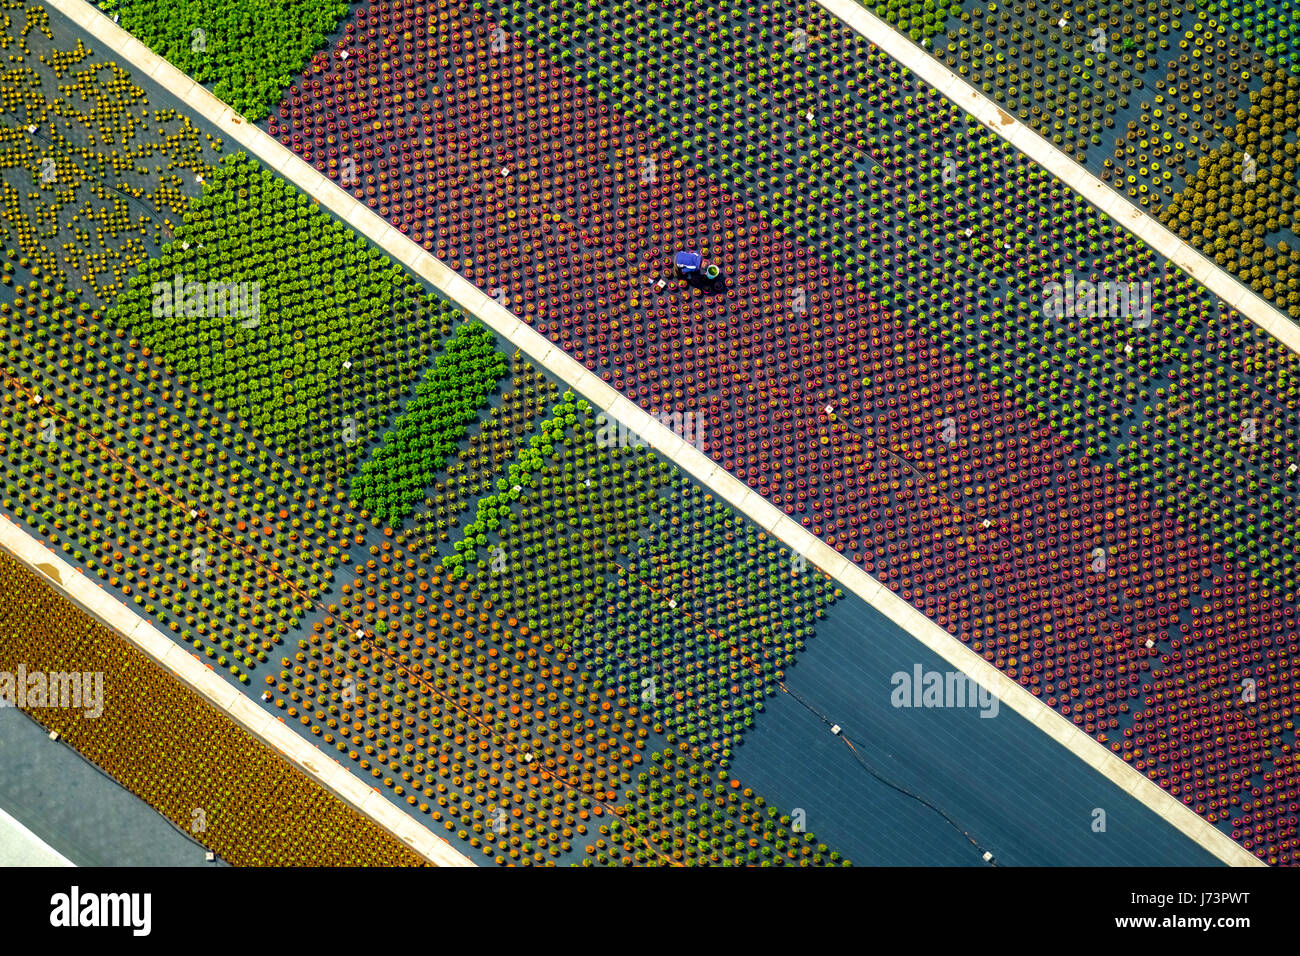 Horticulture, colorful potted plants, gardener at work, horticulture, graphic structures, colorful lines, agriculture, - Stock Image